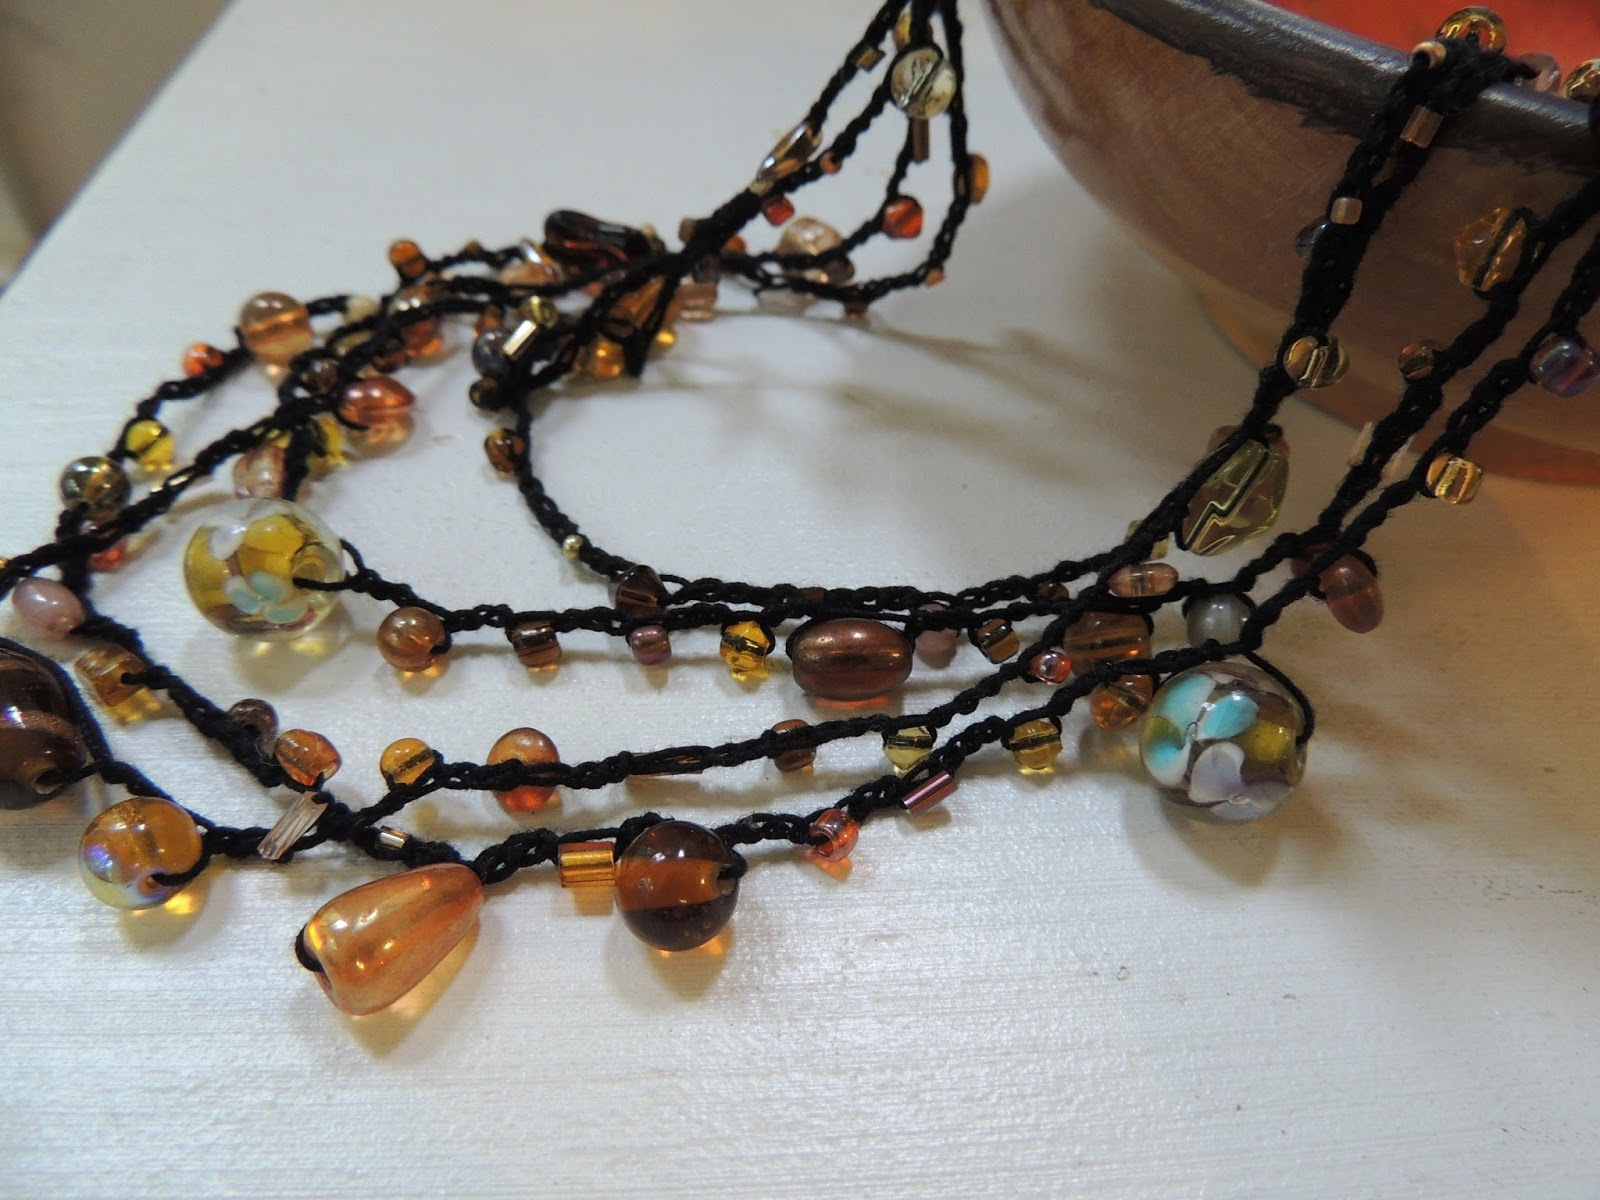 Crochet Stitches Jewelry : Susans Hippie Crochet: Glass Beads and Chain Stitch, awesome jewelry ...